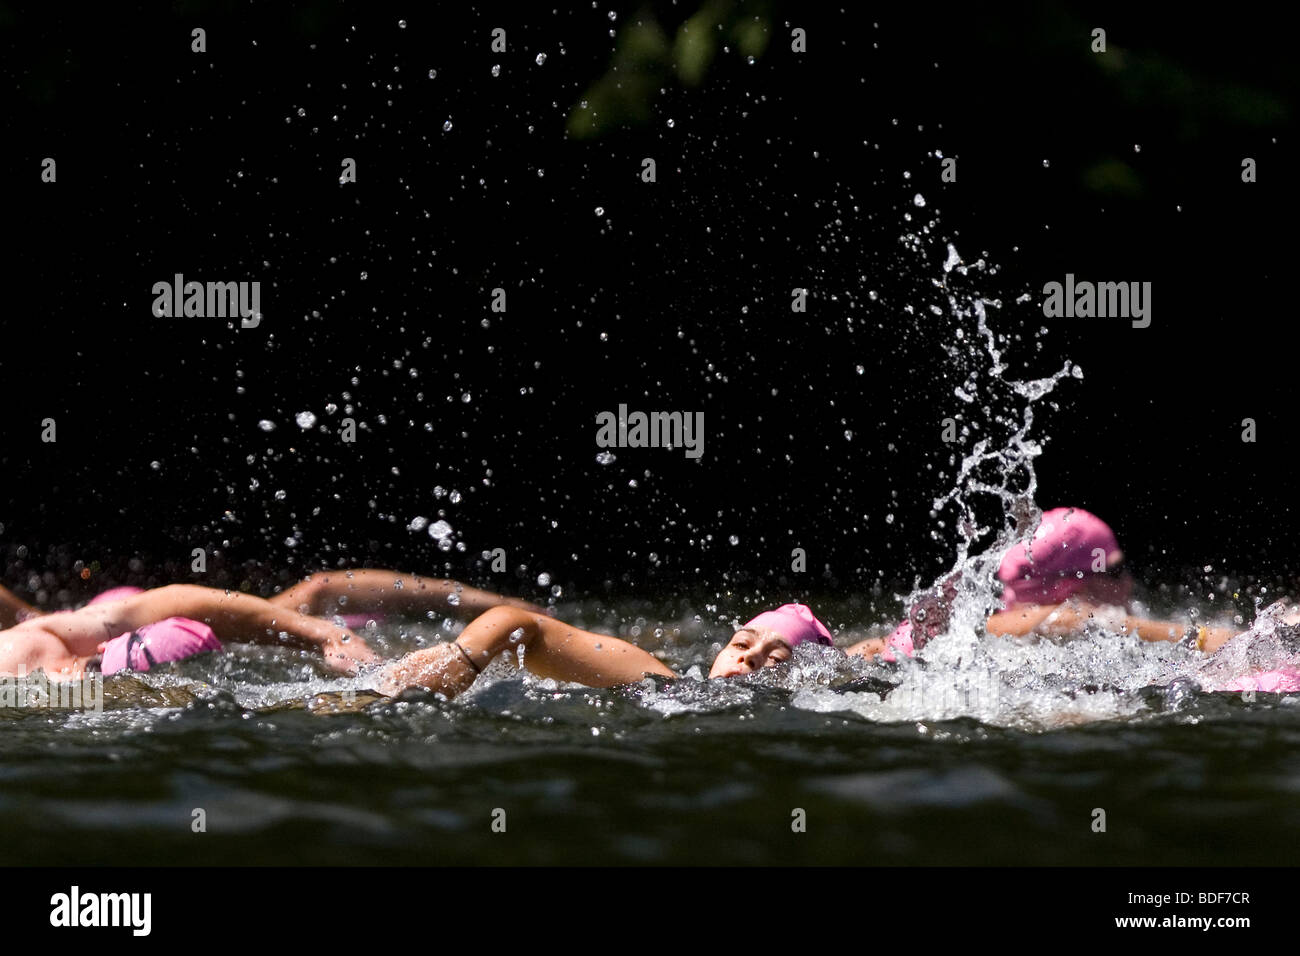 Swimmers compete in an Xterra triathlon. - Stock Image